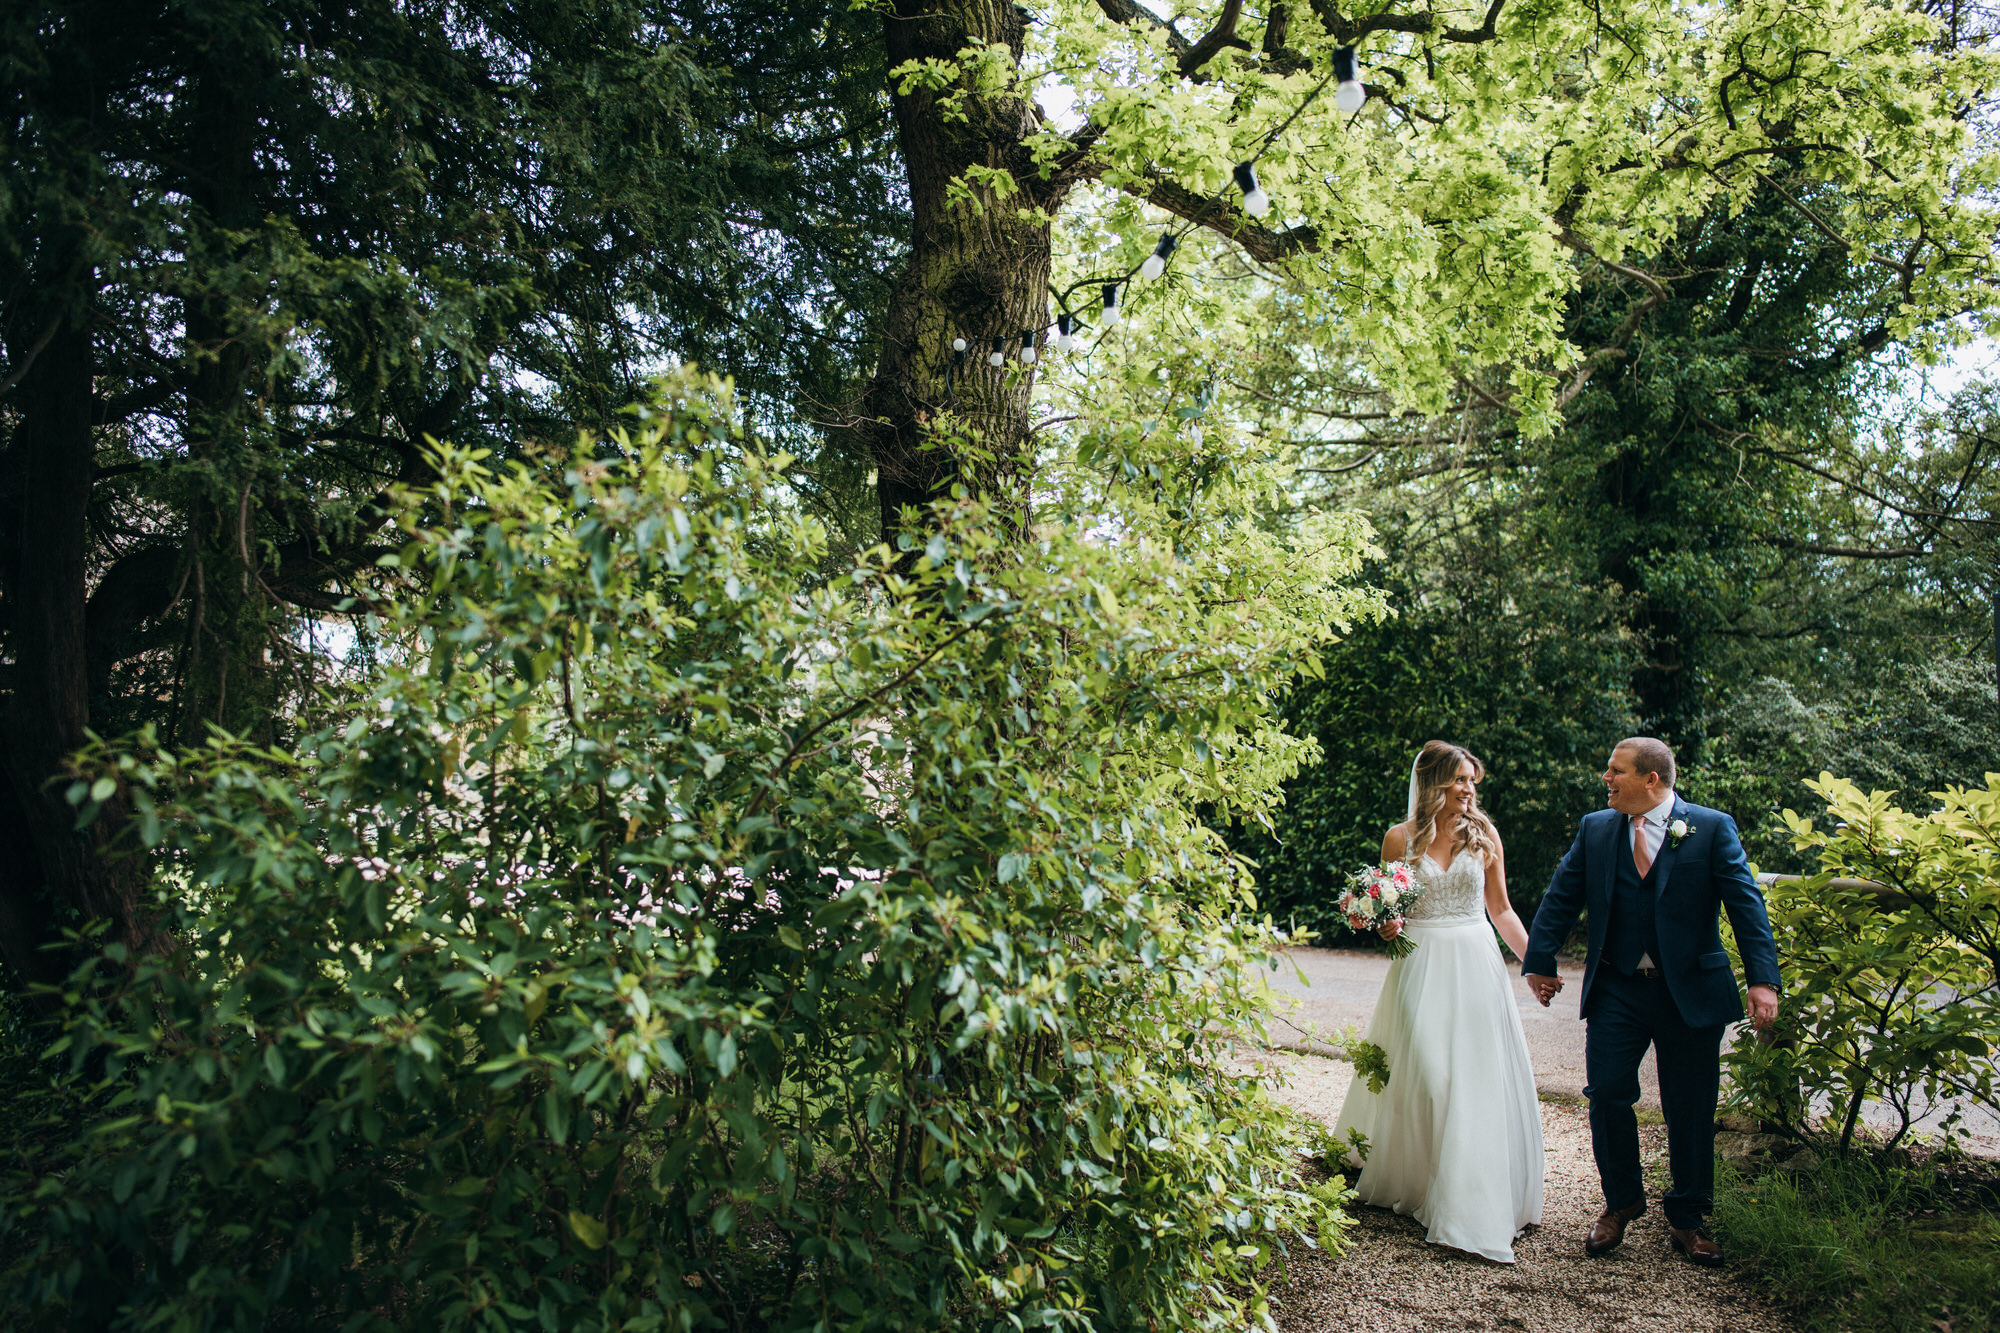 Manor by the lake wedding photographer 34